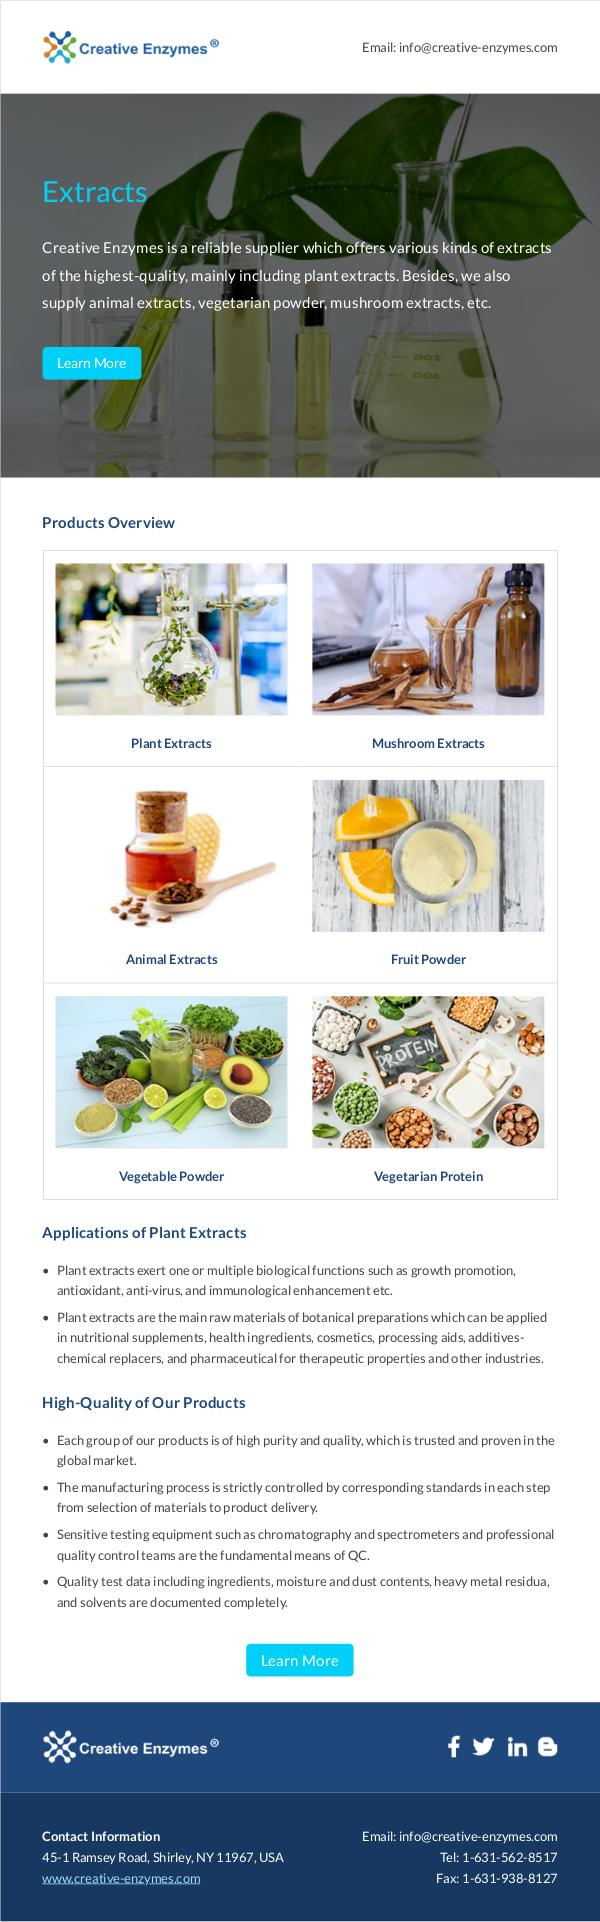 Creative Enzymes product Extracts